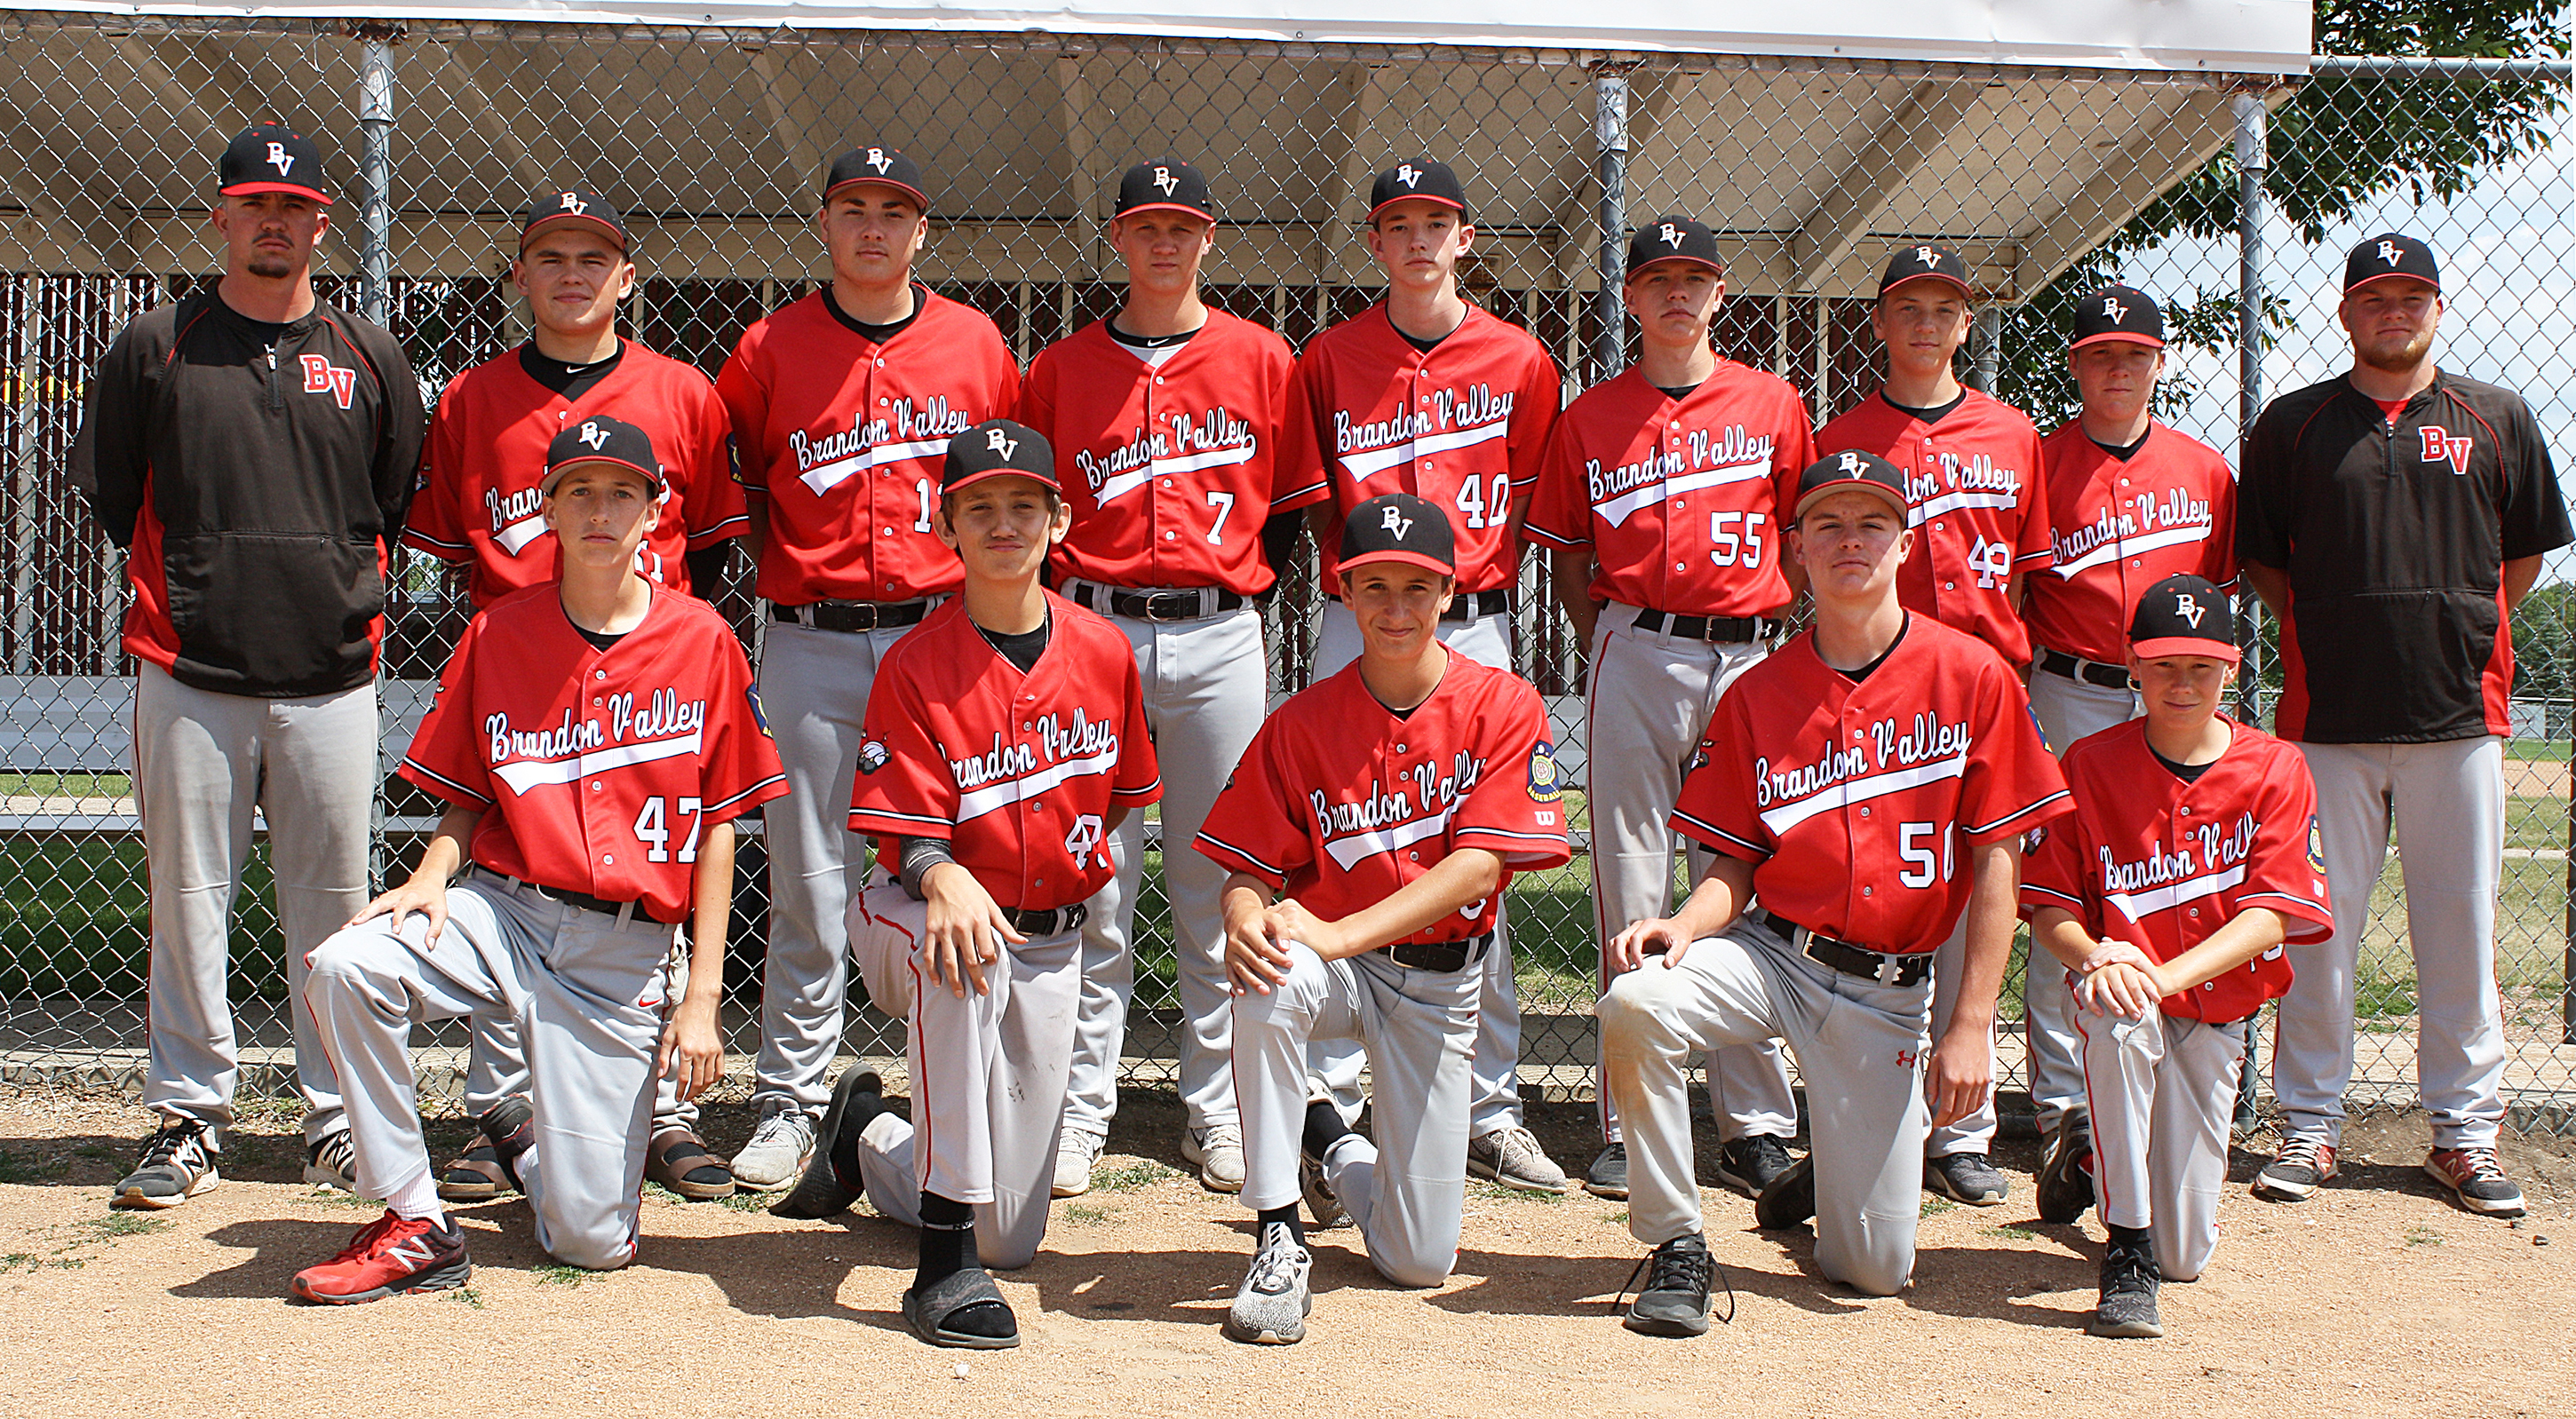 Brandon Valley 16U made a comeback in the state 16U baseball tournament. Coaches Ethan Horner and Mitch Hoover led the team to their fourth-place finish July 26-29 in Watertown. Members of the team are, from left, row one: Caden Zerr, Landen Niehoff, Sam Oltoff, Dawson Skorczewski and Cole Bunker; row two: Coach Mitch Hoover, Tyler Schelske, Tanner Nifong, Grant Peterson, Thomas Crosby, Maxwell Kane, Luke Kocer, Jack Krohnke and Coach Ethan Horner. <strong>Submitted photo.</strong>*/